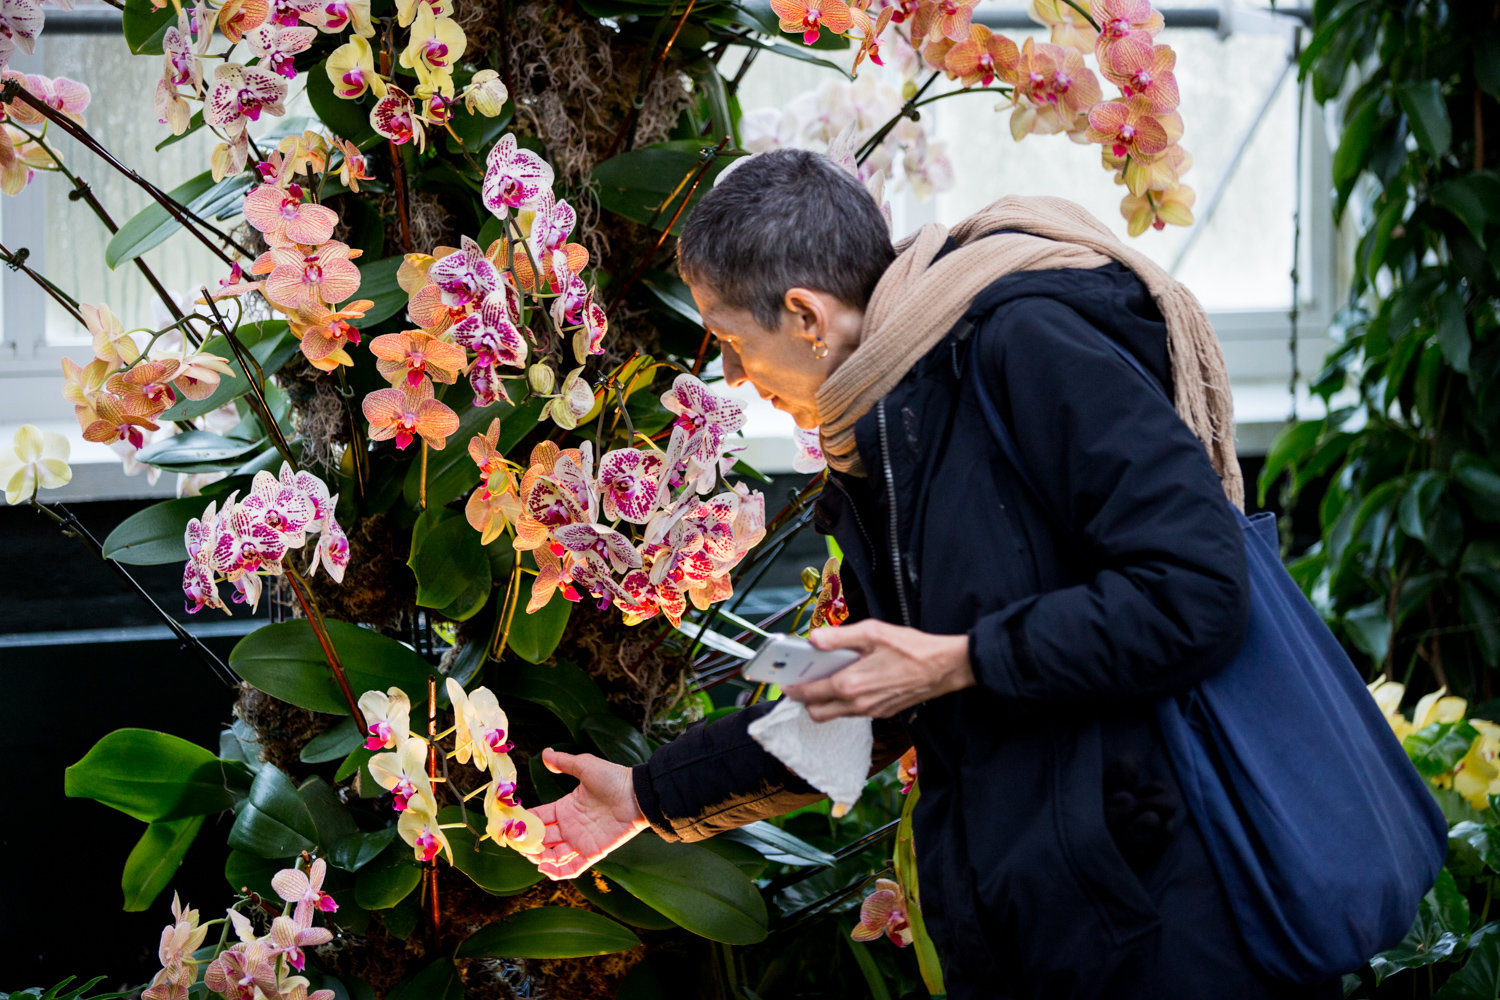 A visitor looks at an orchid at the New York Botanical Garden.